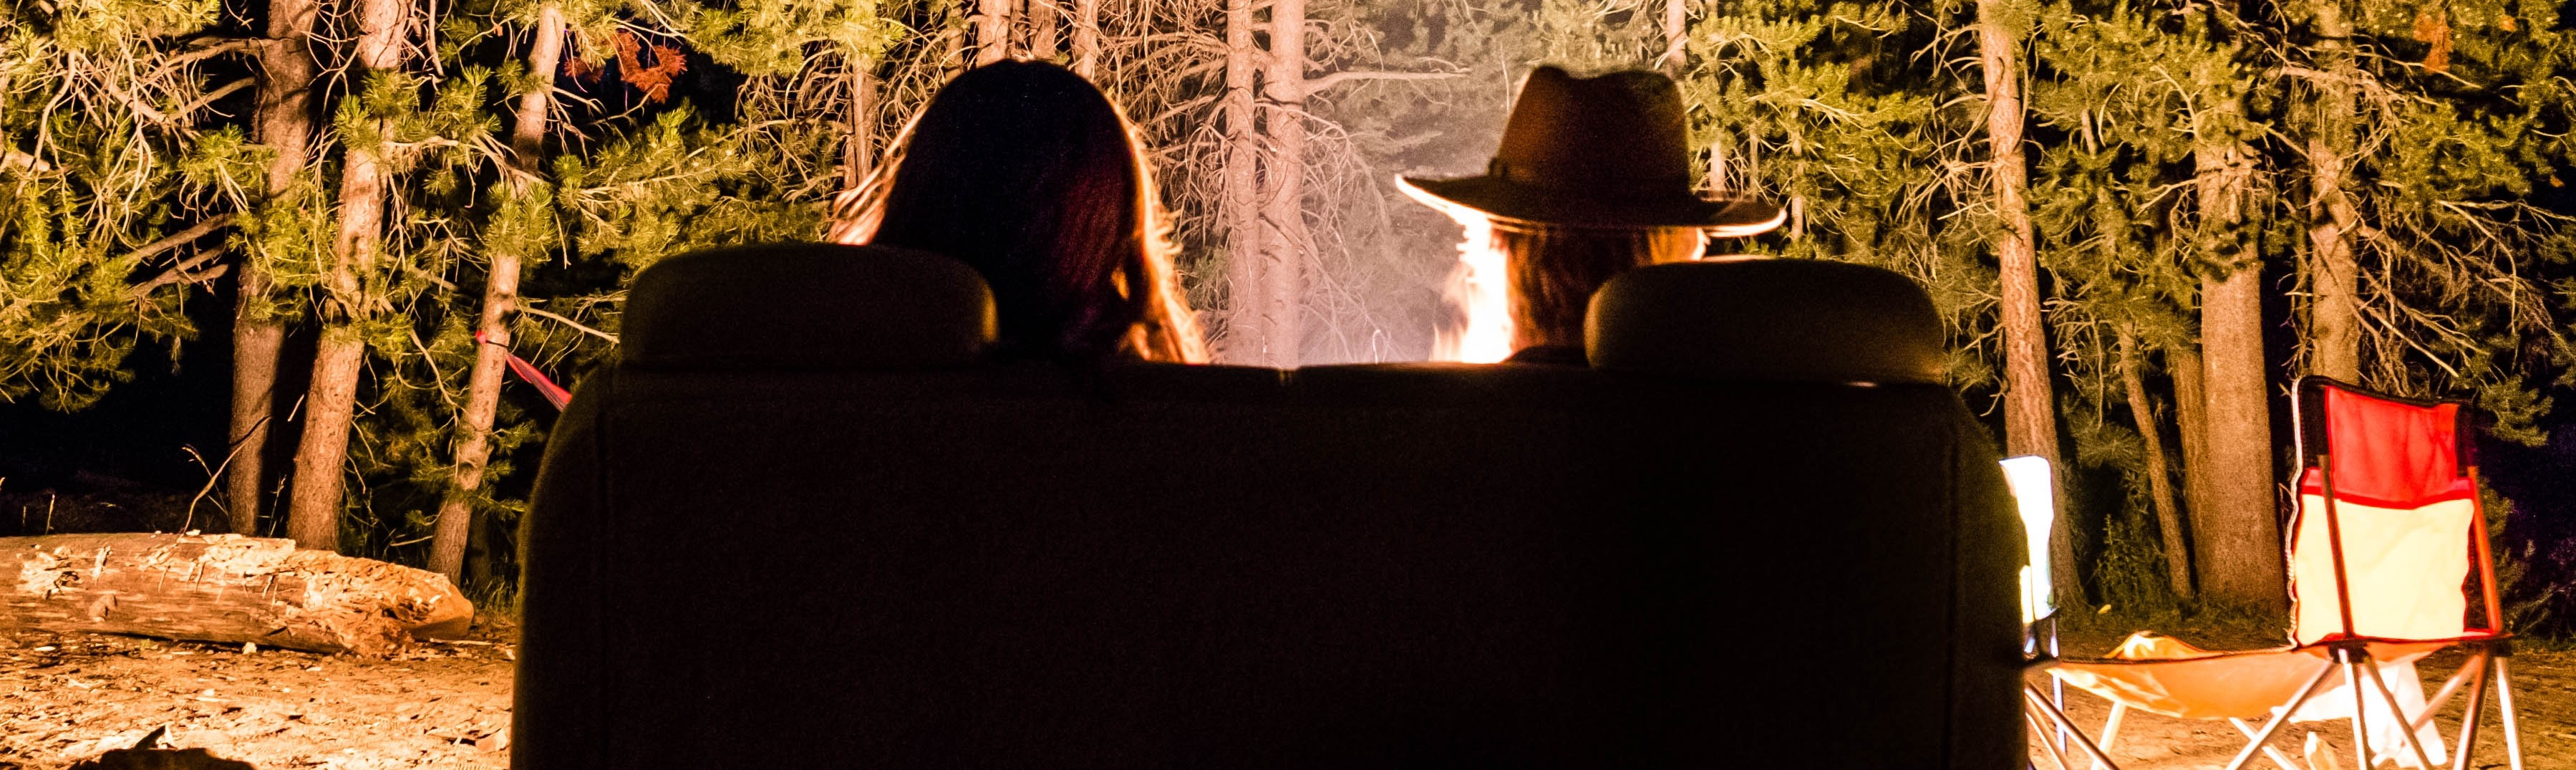 Couple in front of a Campfire | Breast Cancer Car Donations